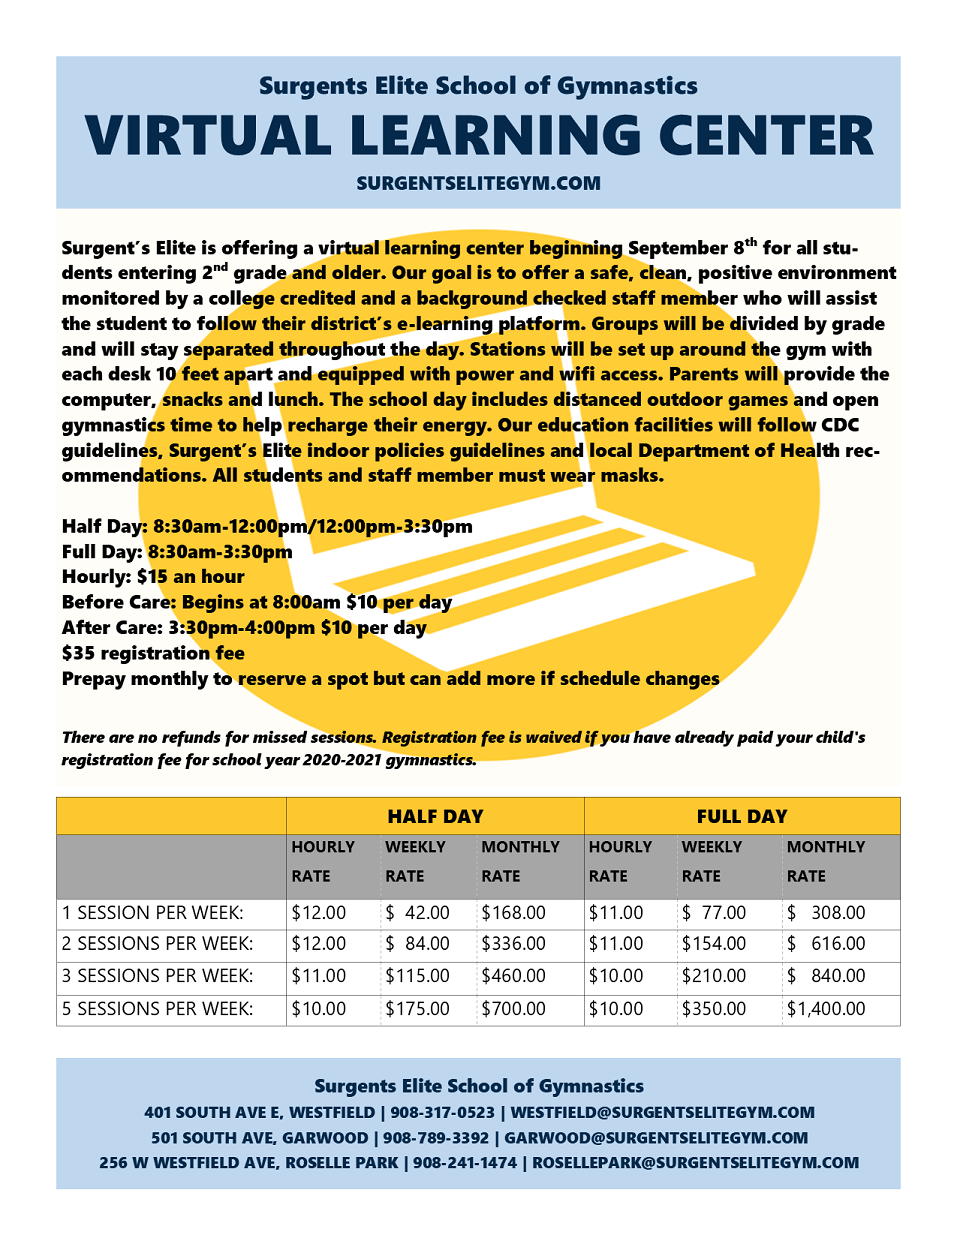 Virtual Learning Center Information